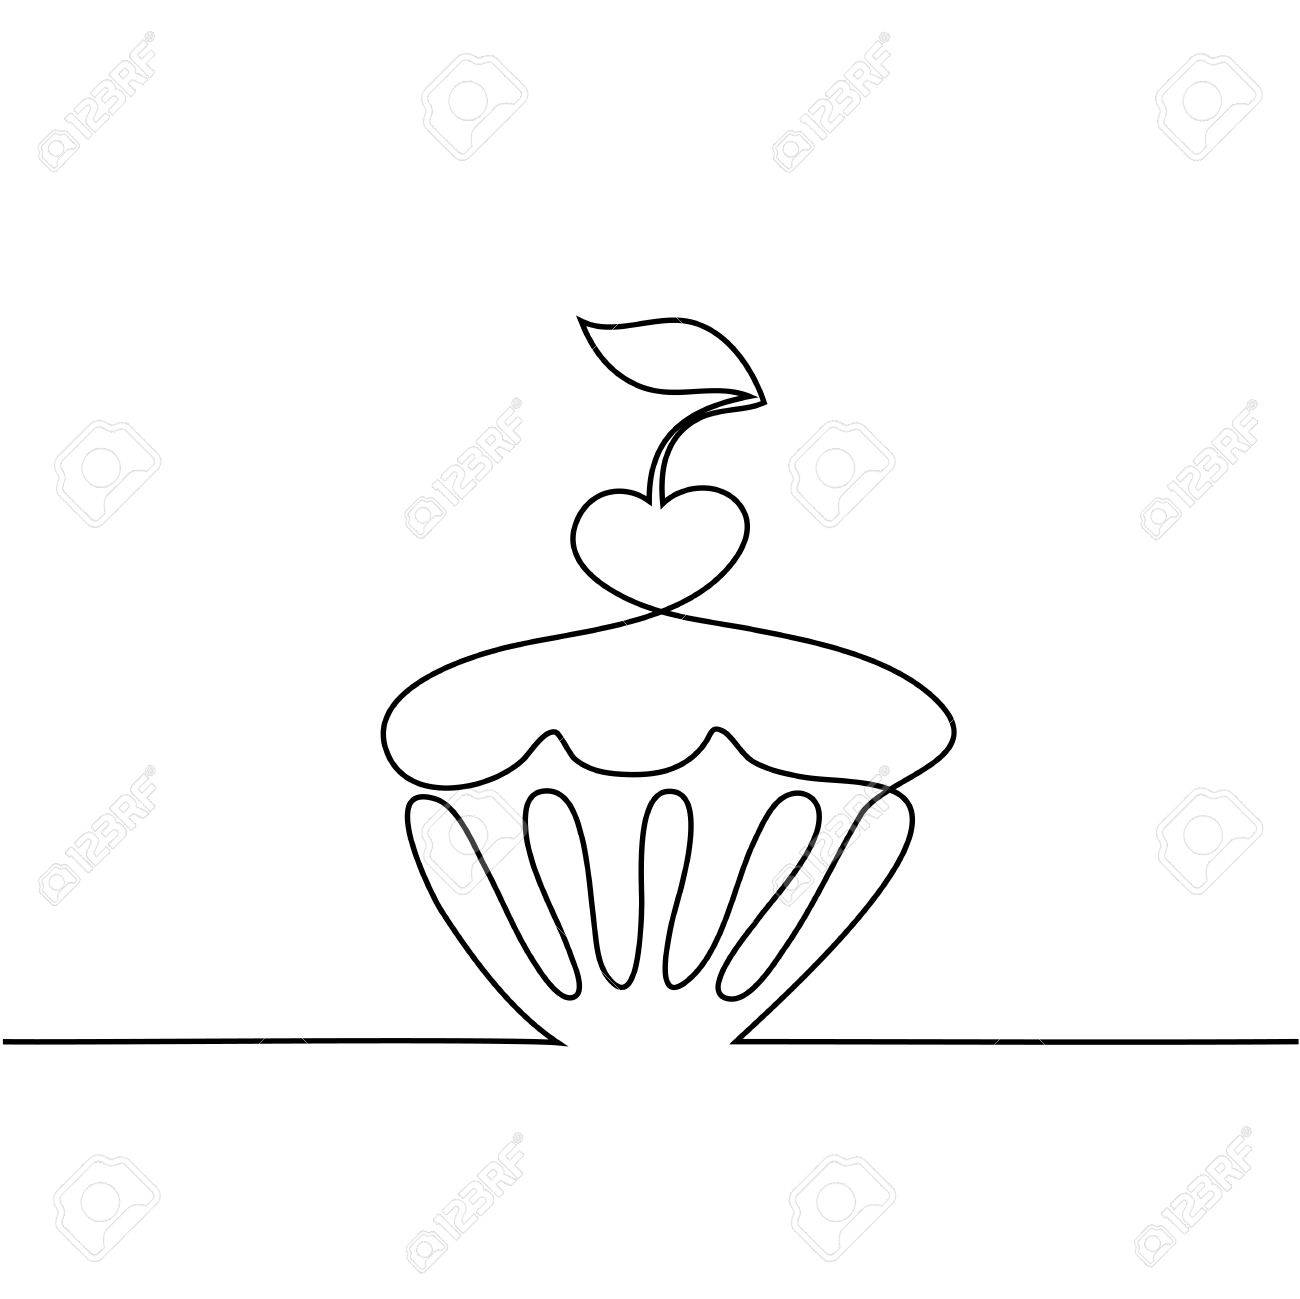 1300x1299 Cup Cake With Cherry. Continuous Line Drawing Design Vector